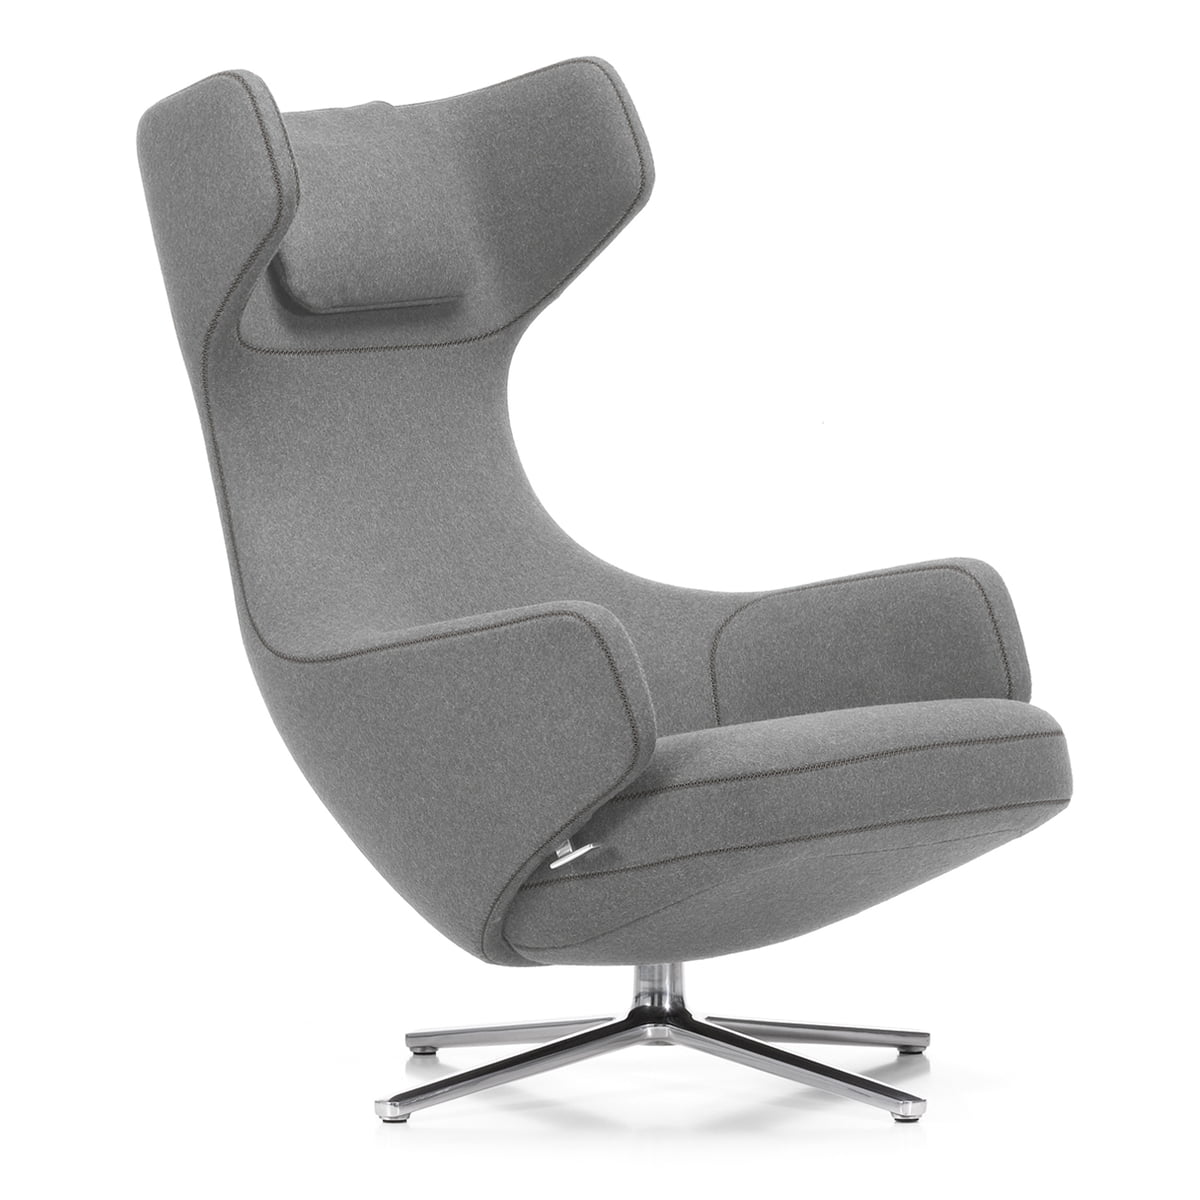 Vitra   Grand Repos Armchair H 41 Cm, Light Gray (01 Pebble) /